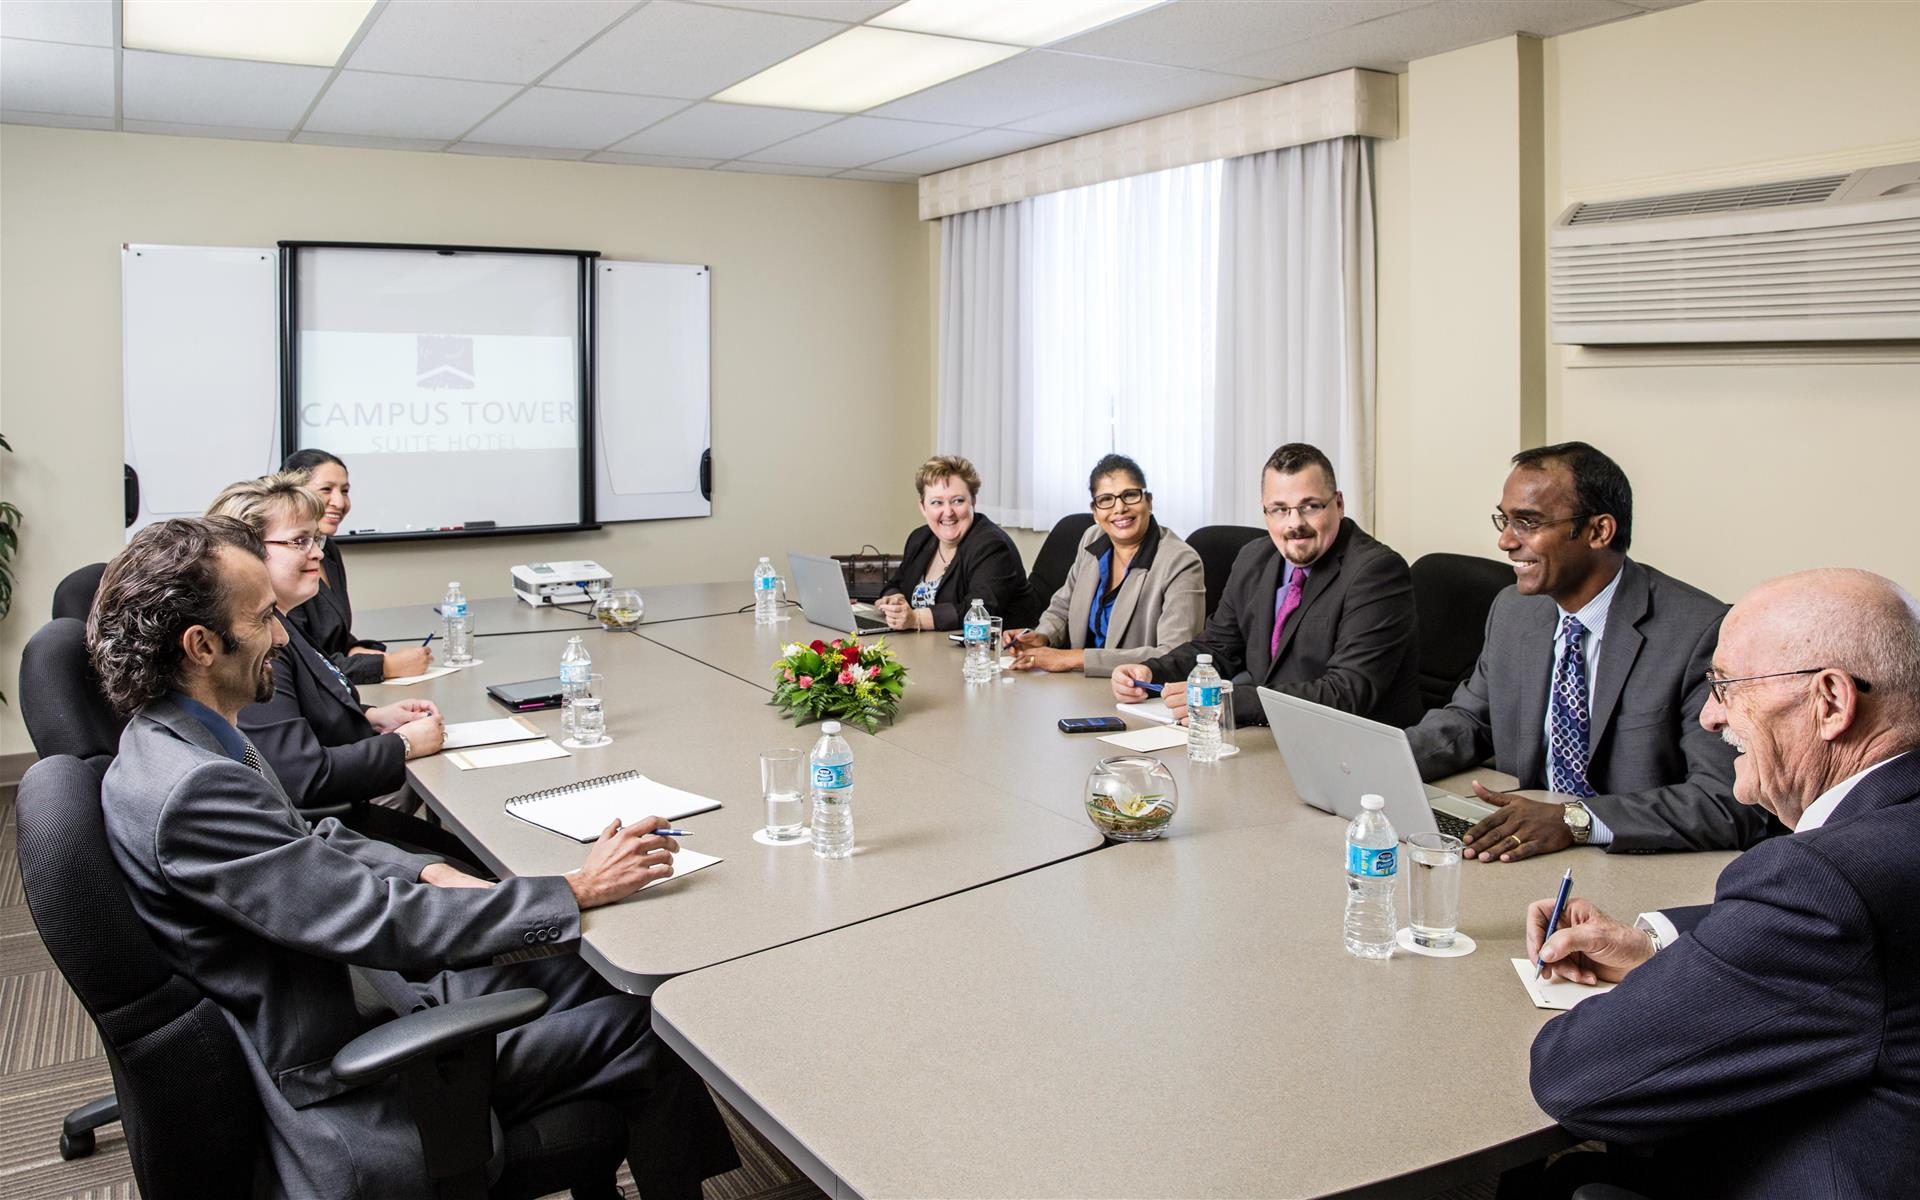 Campus Tower Suite Hotel - The Board Room